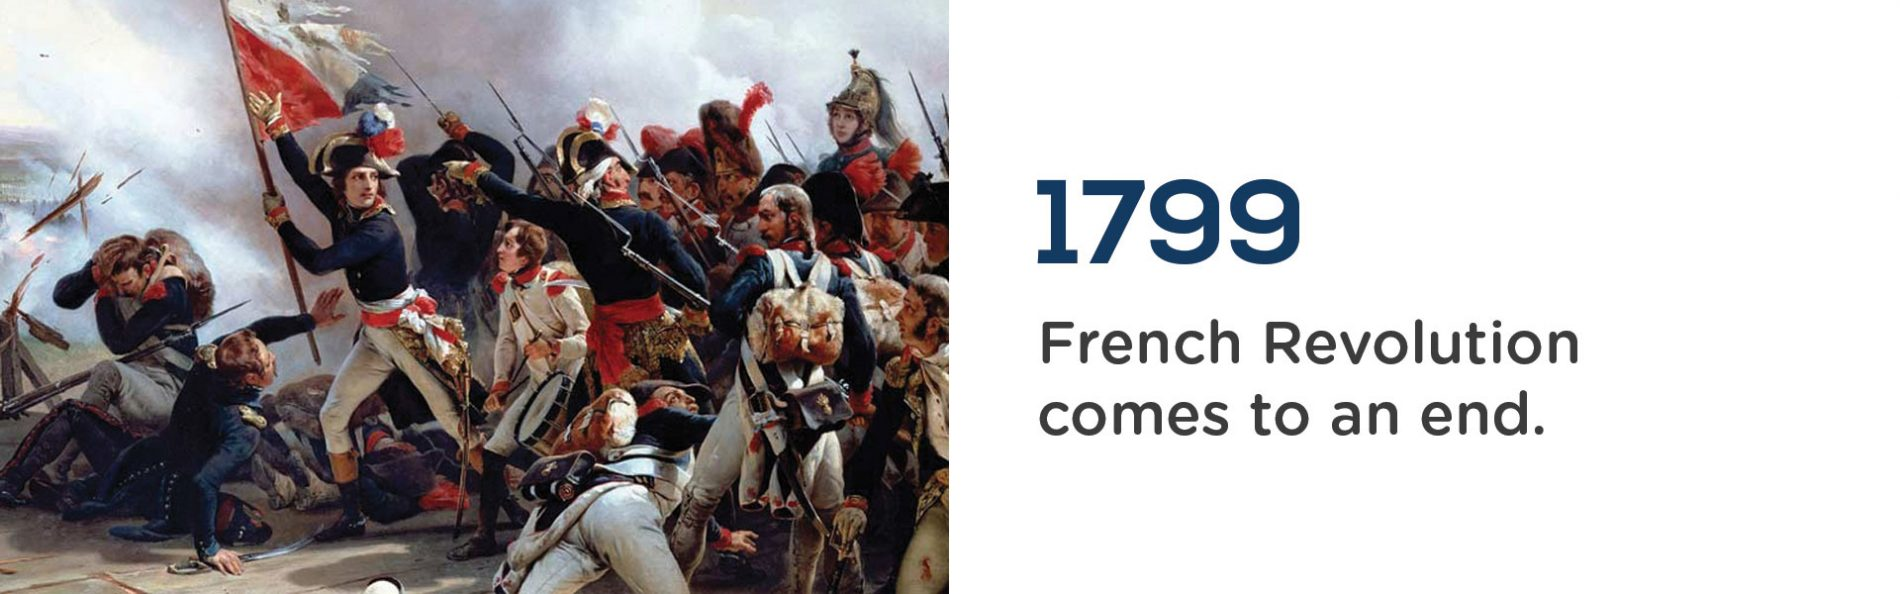 1799 The French Revolution comes to an end. Wrigley Claydon Solicitors, Trusted for 200 years